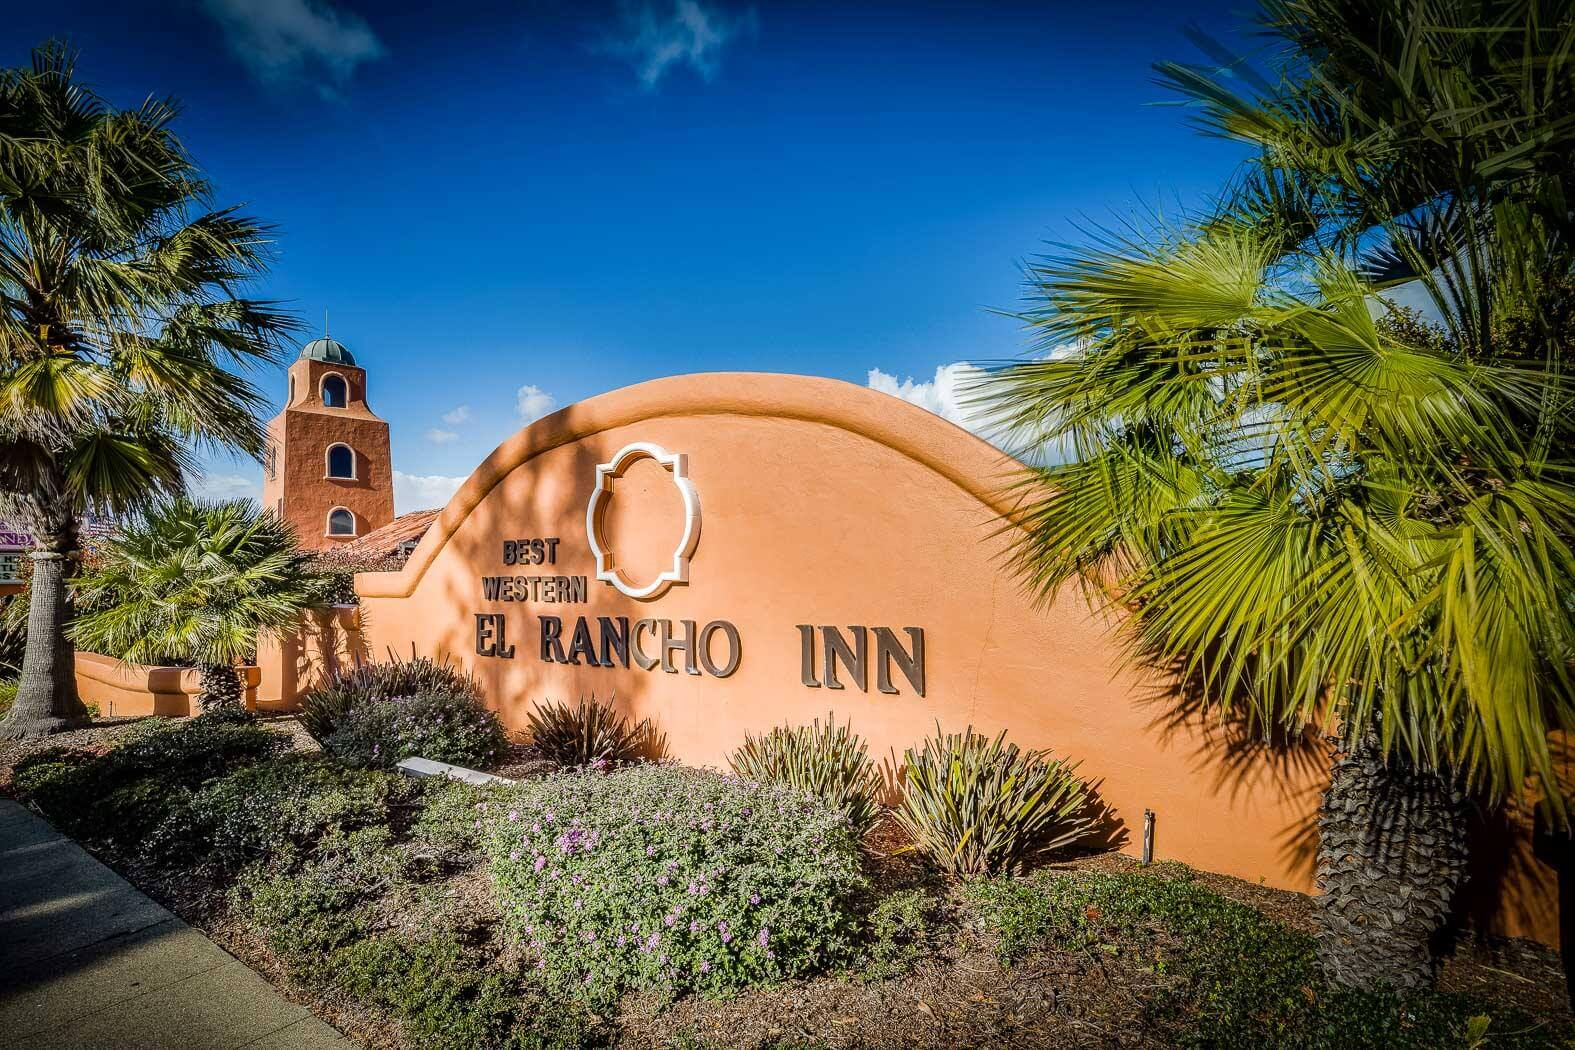 Entrance sign to the Best Western Plus El Rancho Inn surrounded by palm trees and shrubbery